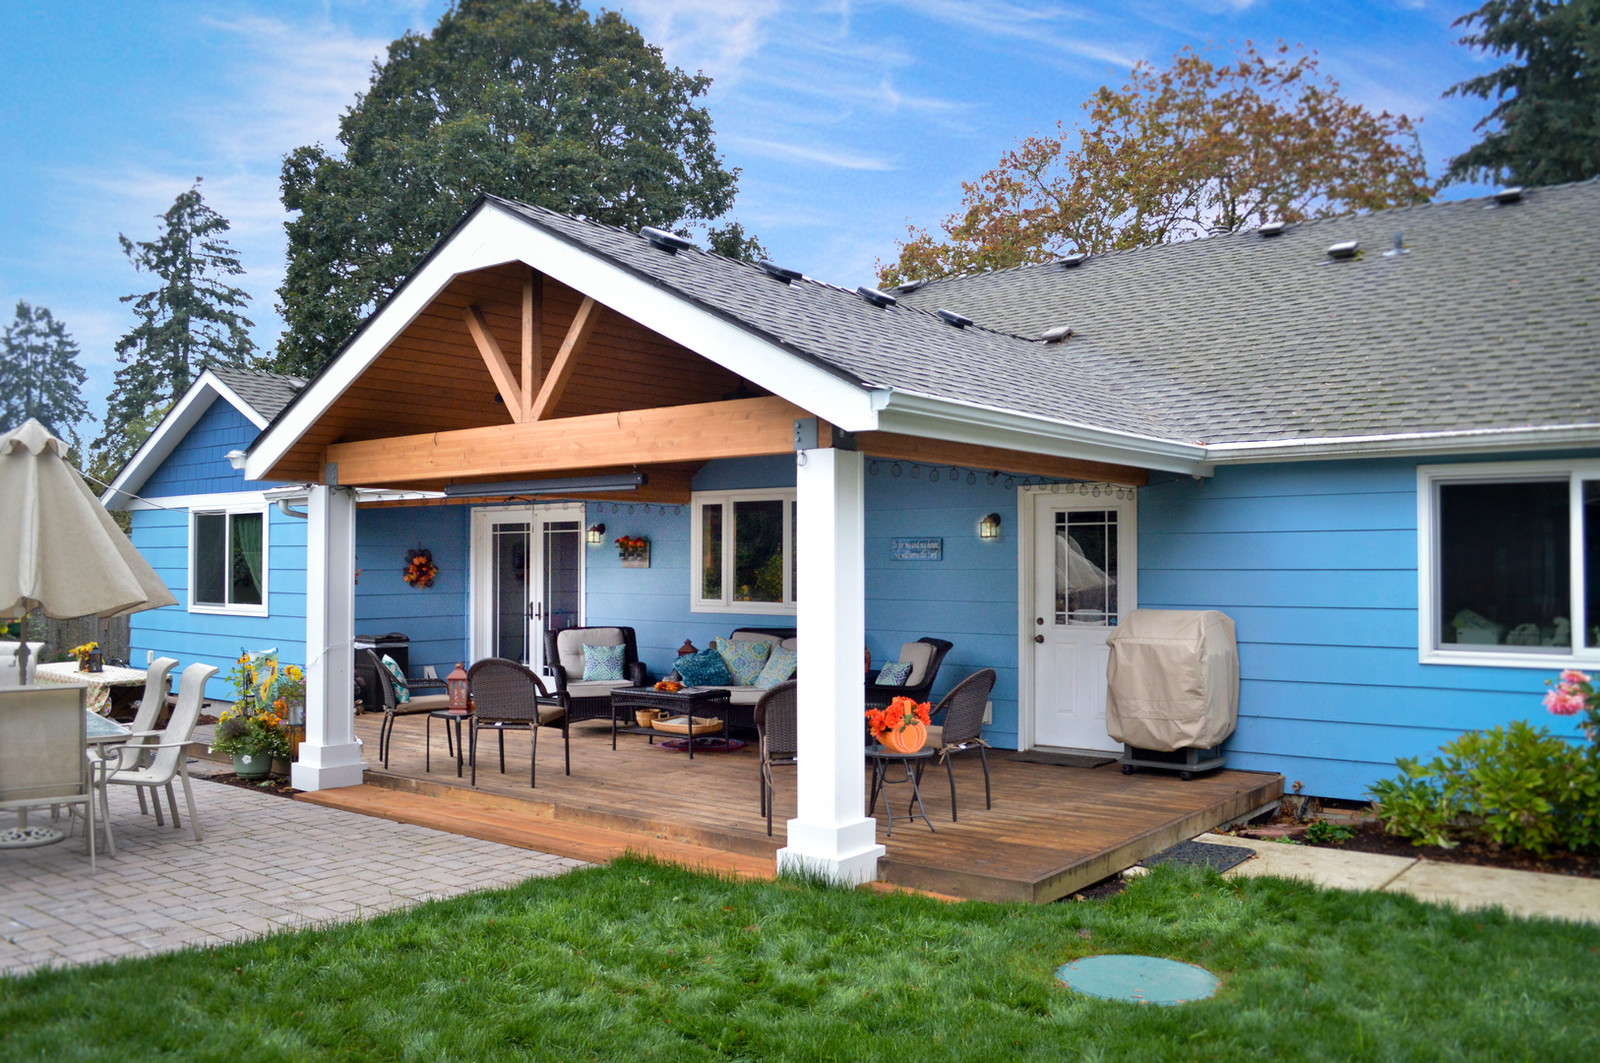 Genial Gable And Shed Patio Cover